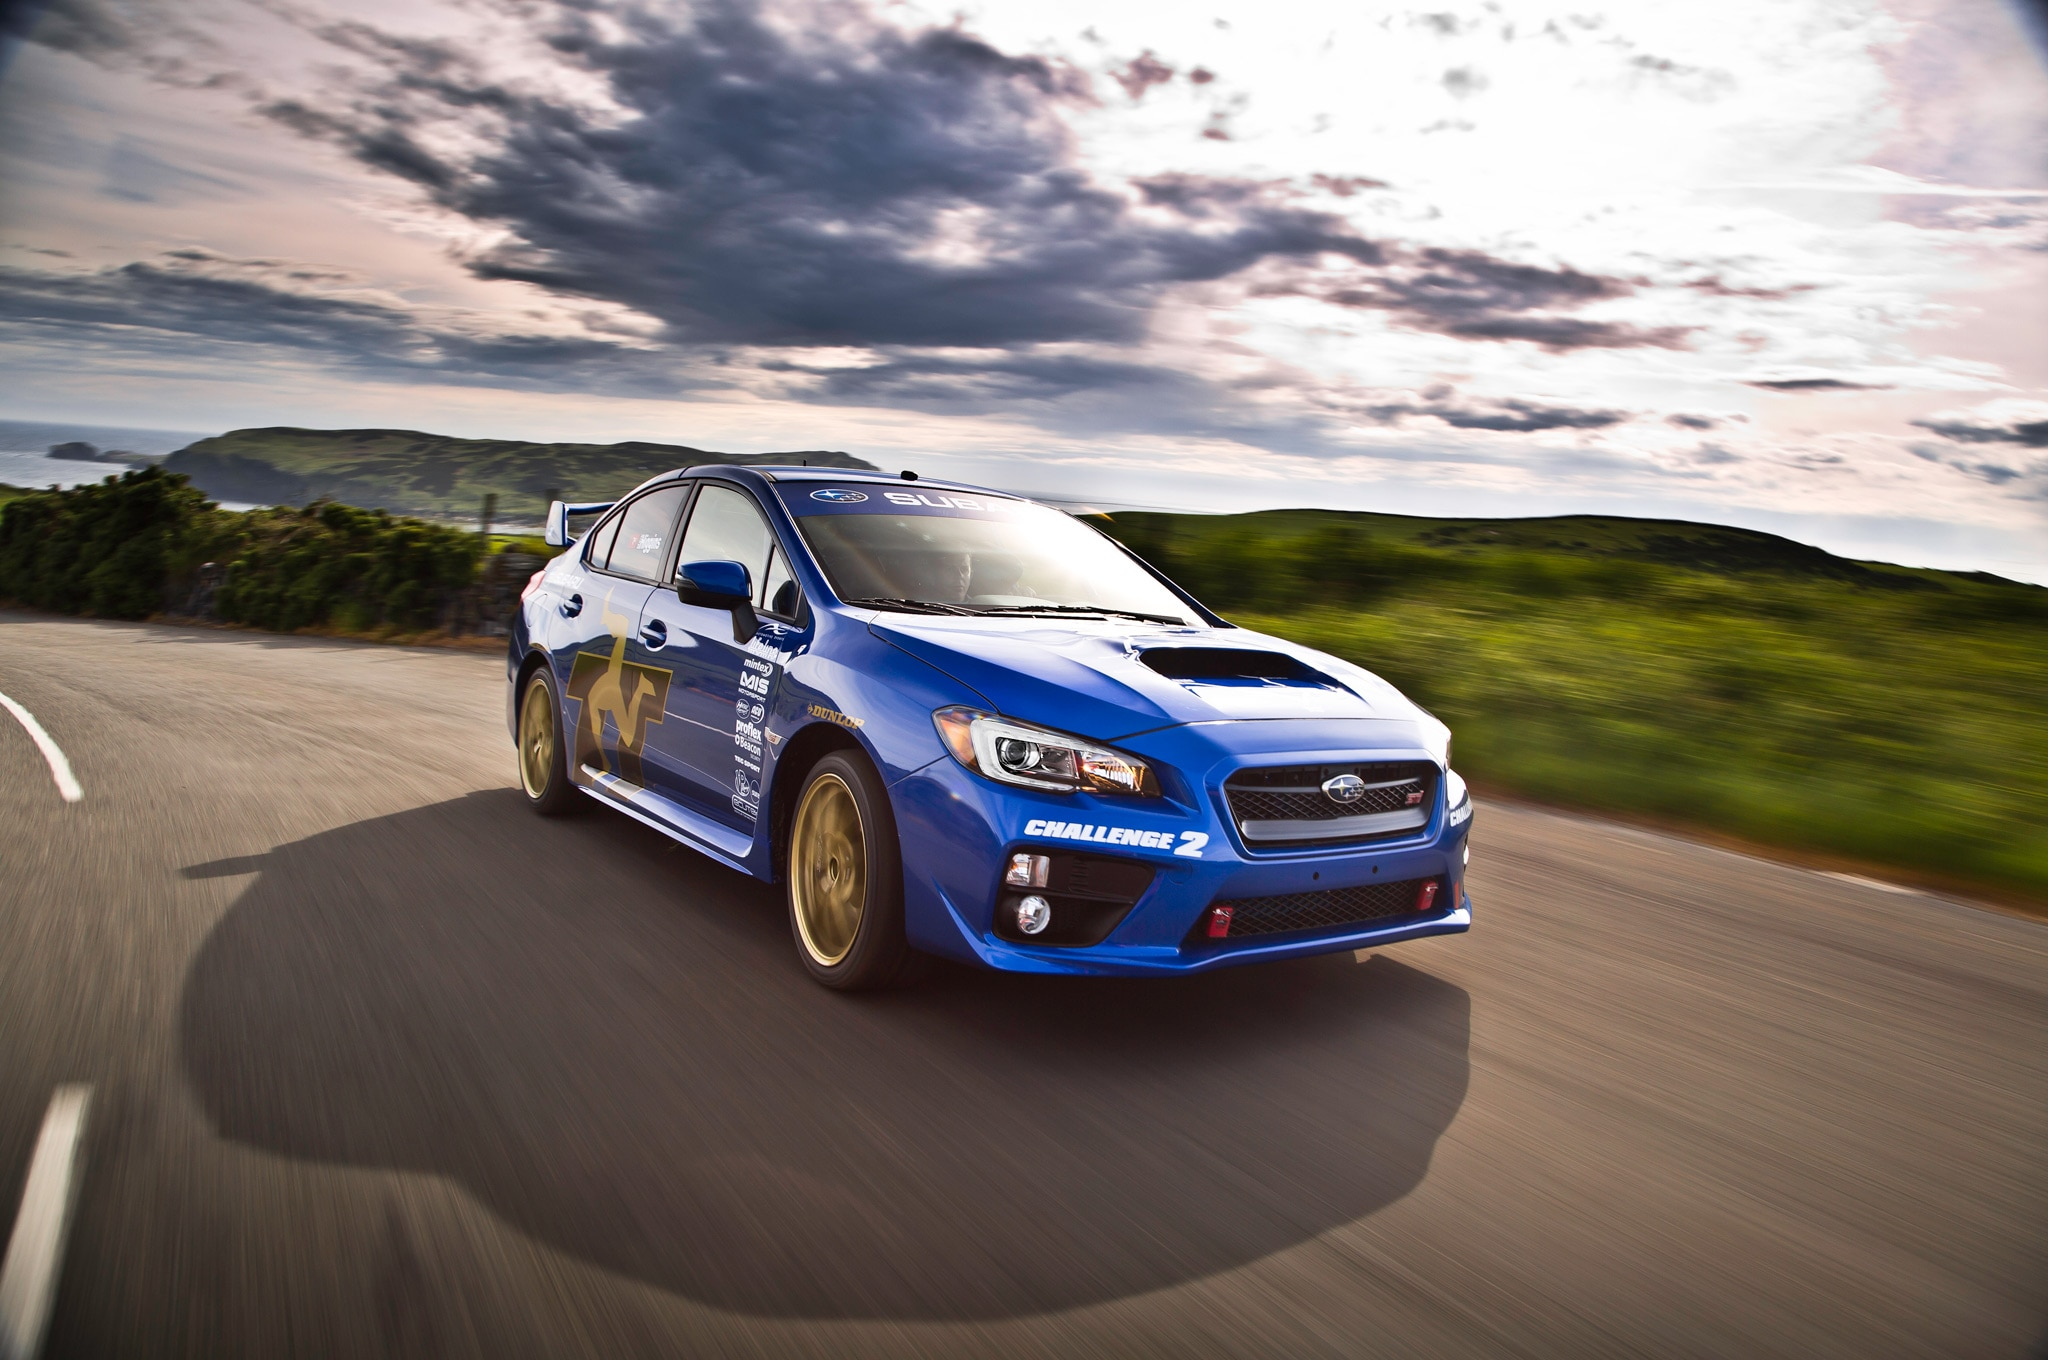 2015 Subaru WRX STI At Isle Of Man With Bright Sky